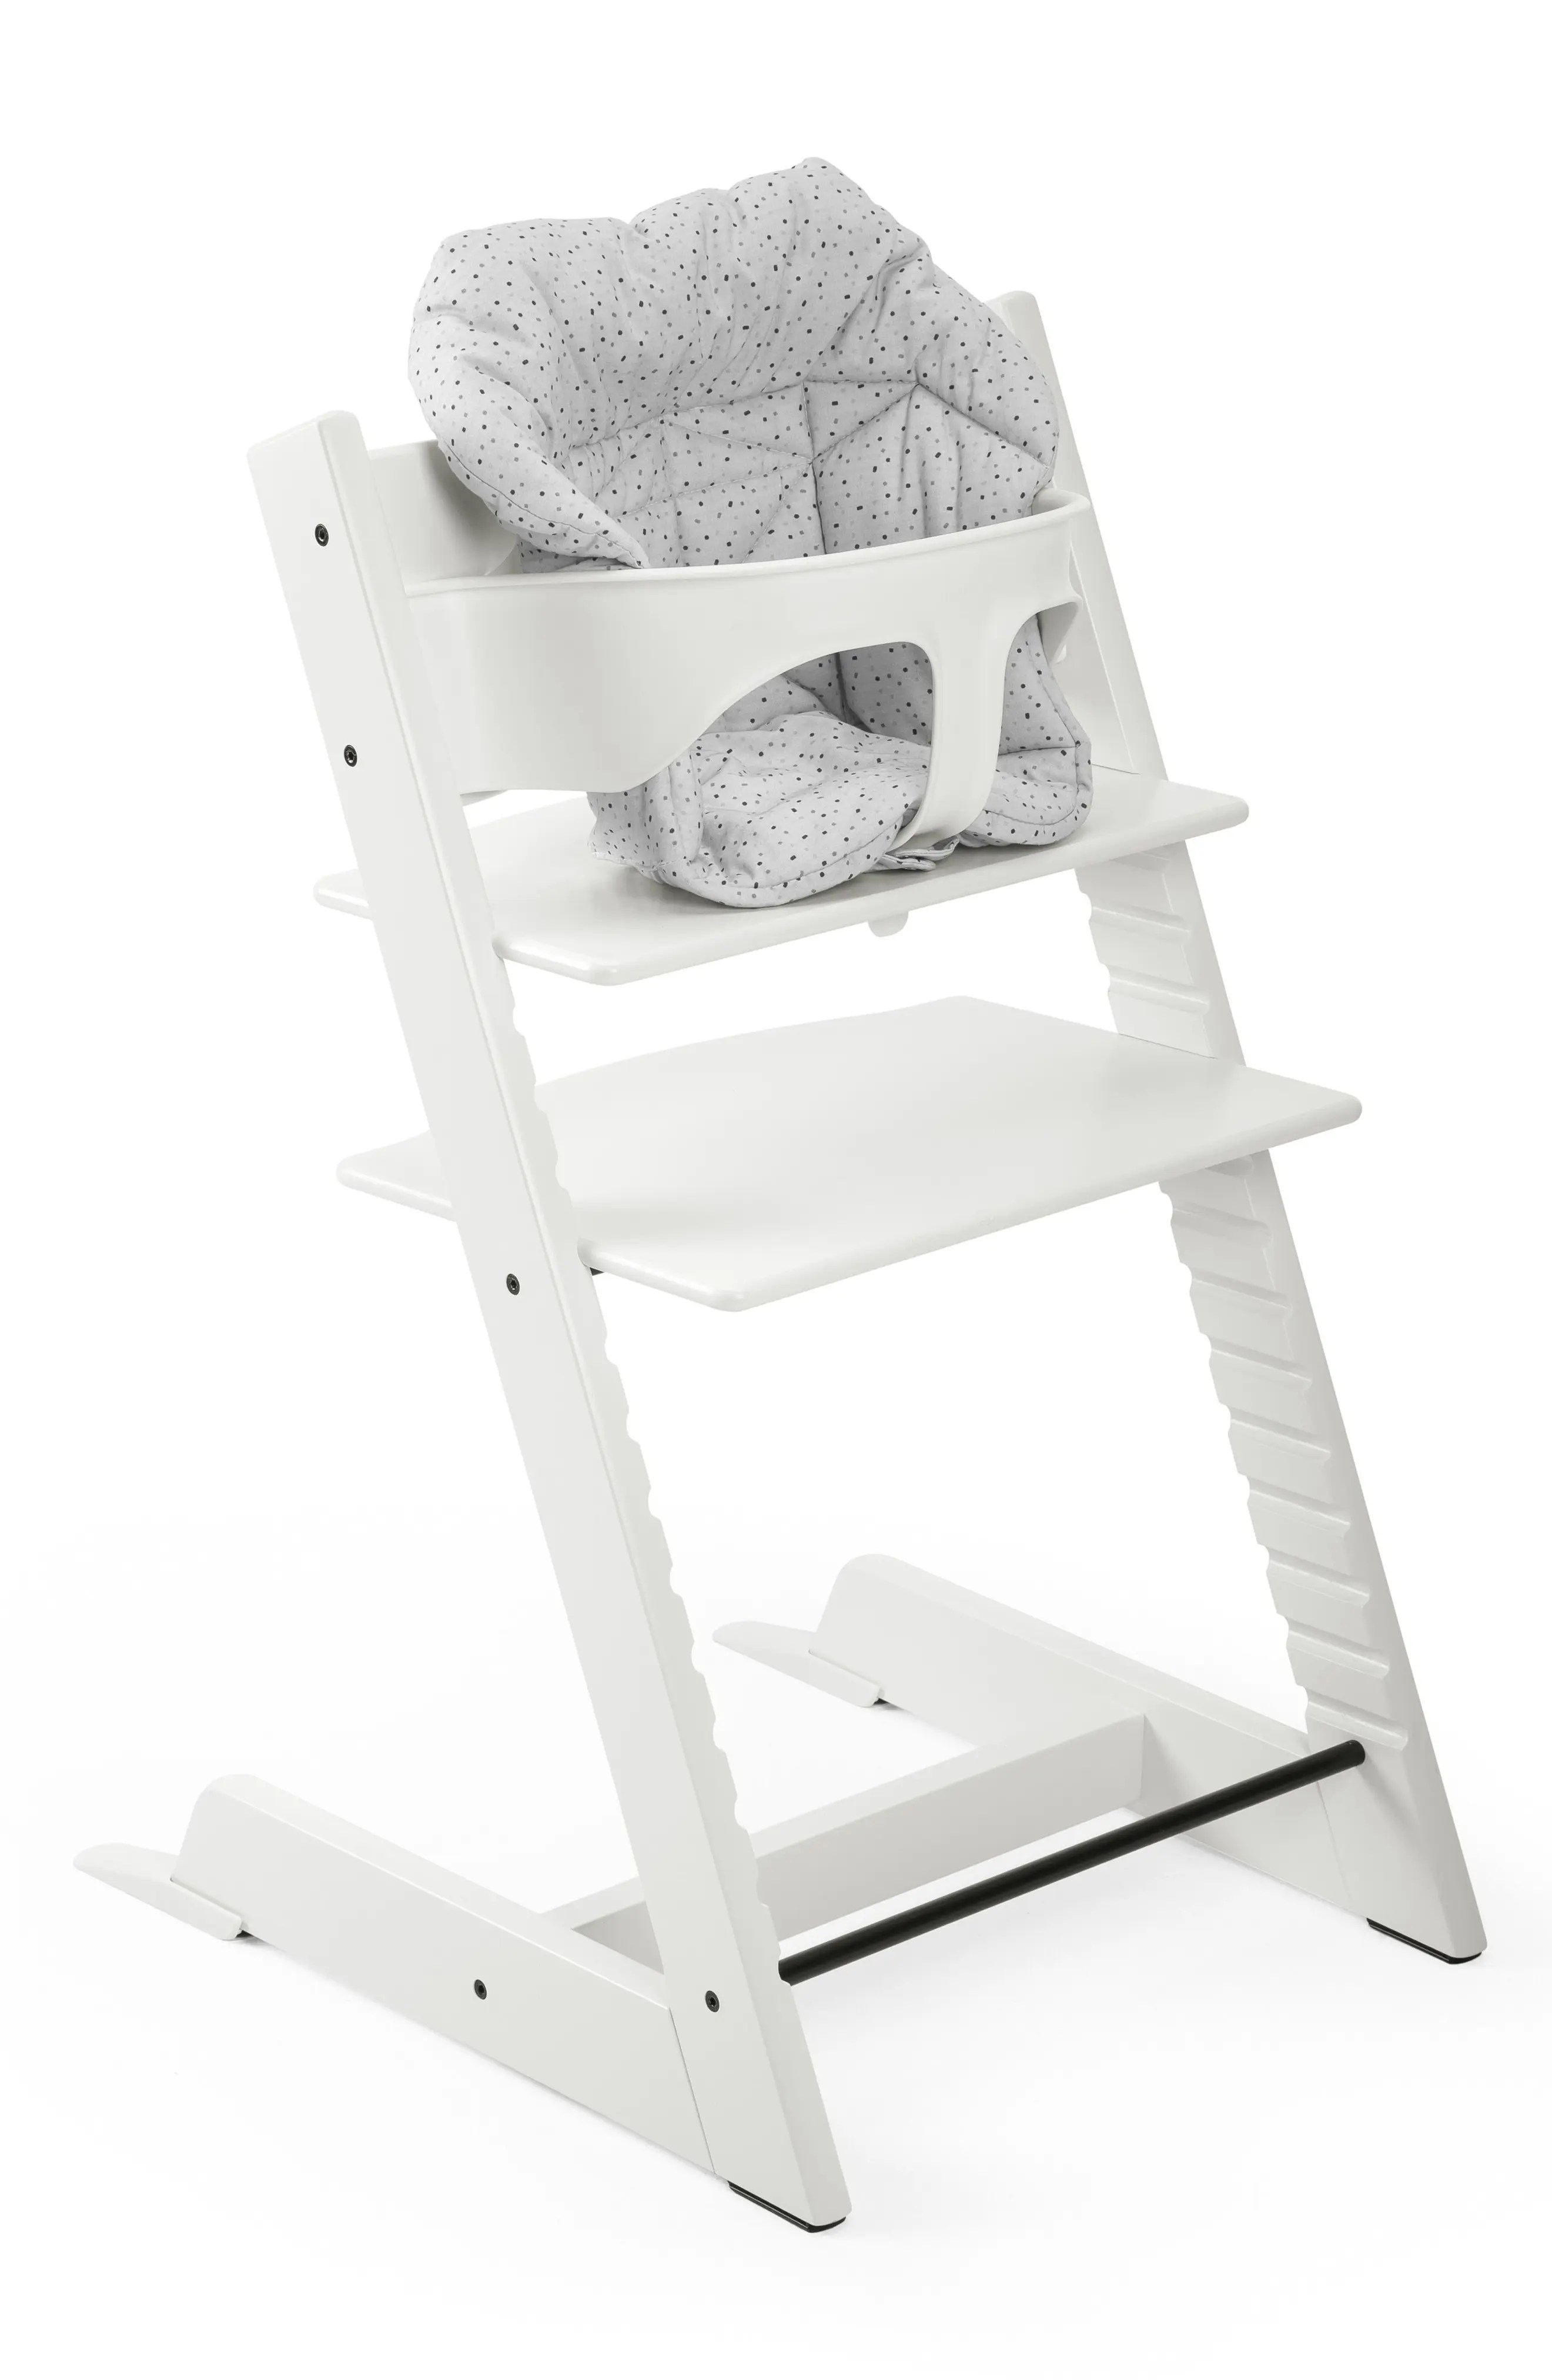 booster seat high chair wedding reception chairs covers seats for tables nordstrom stokke cushion tripp trapp highchair